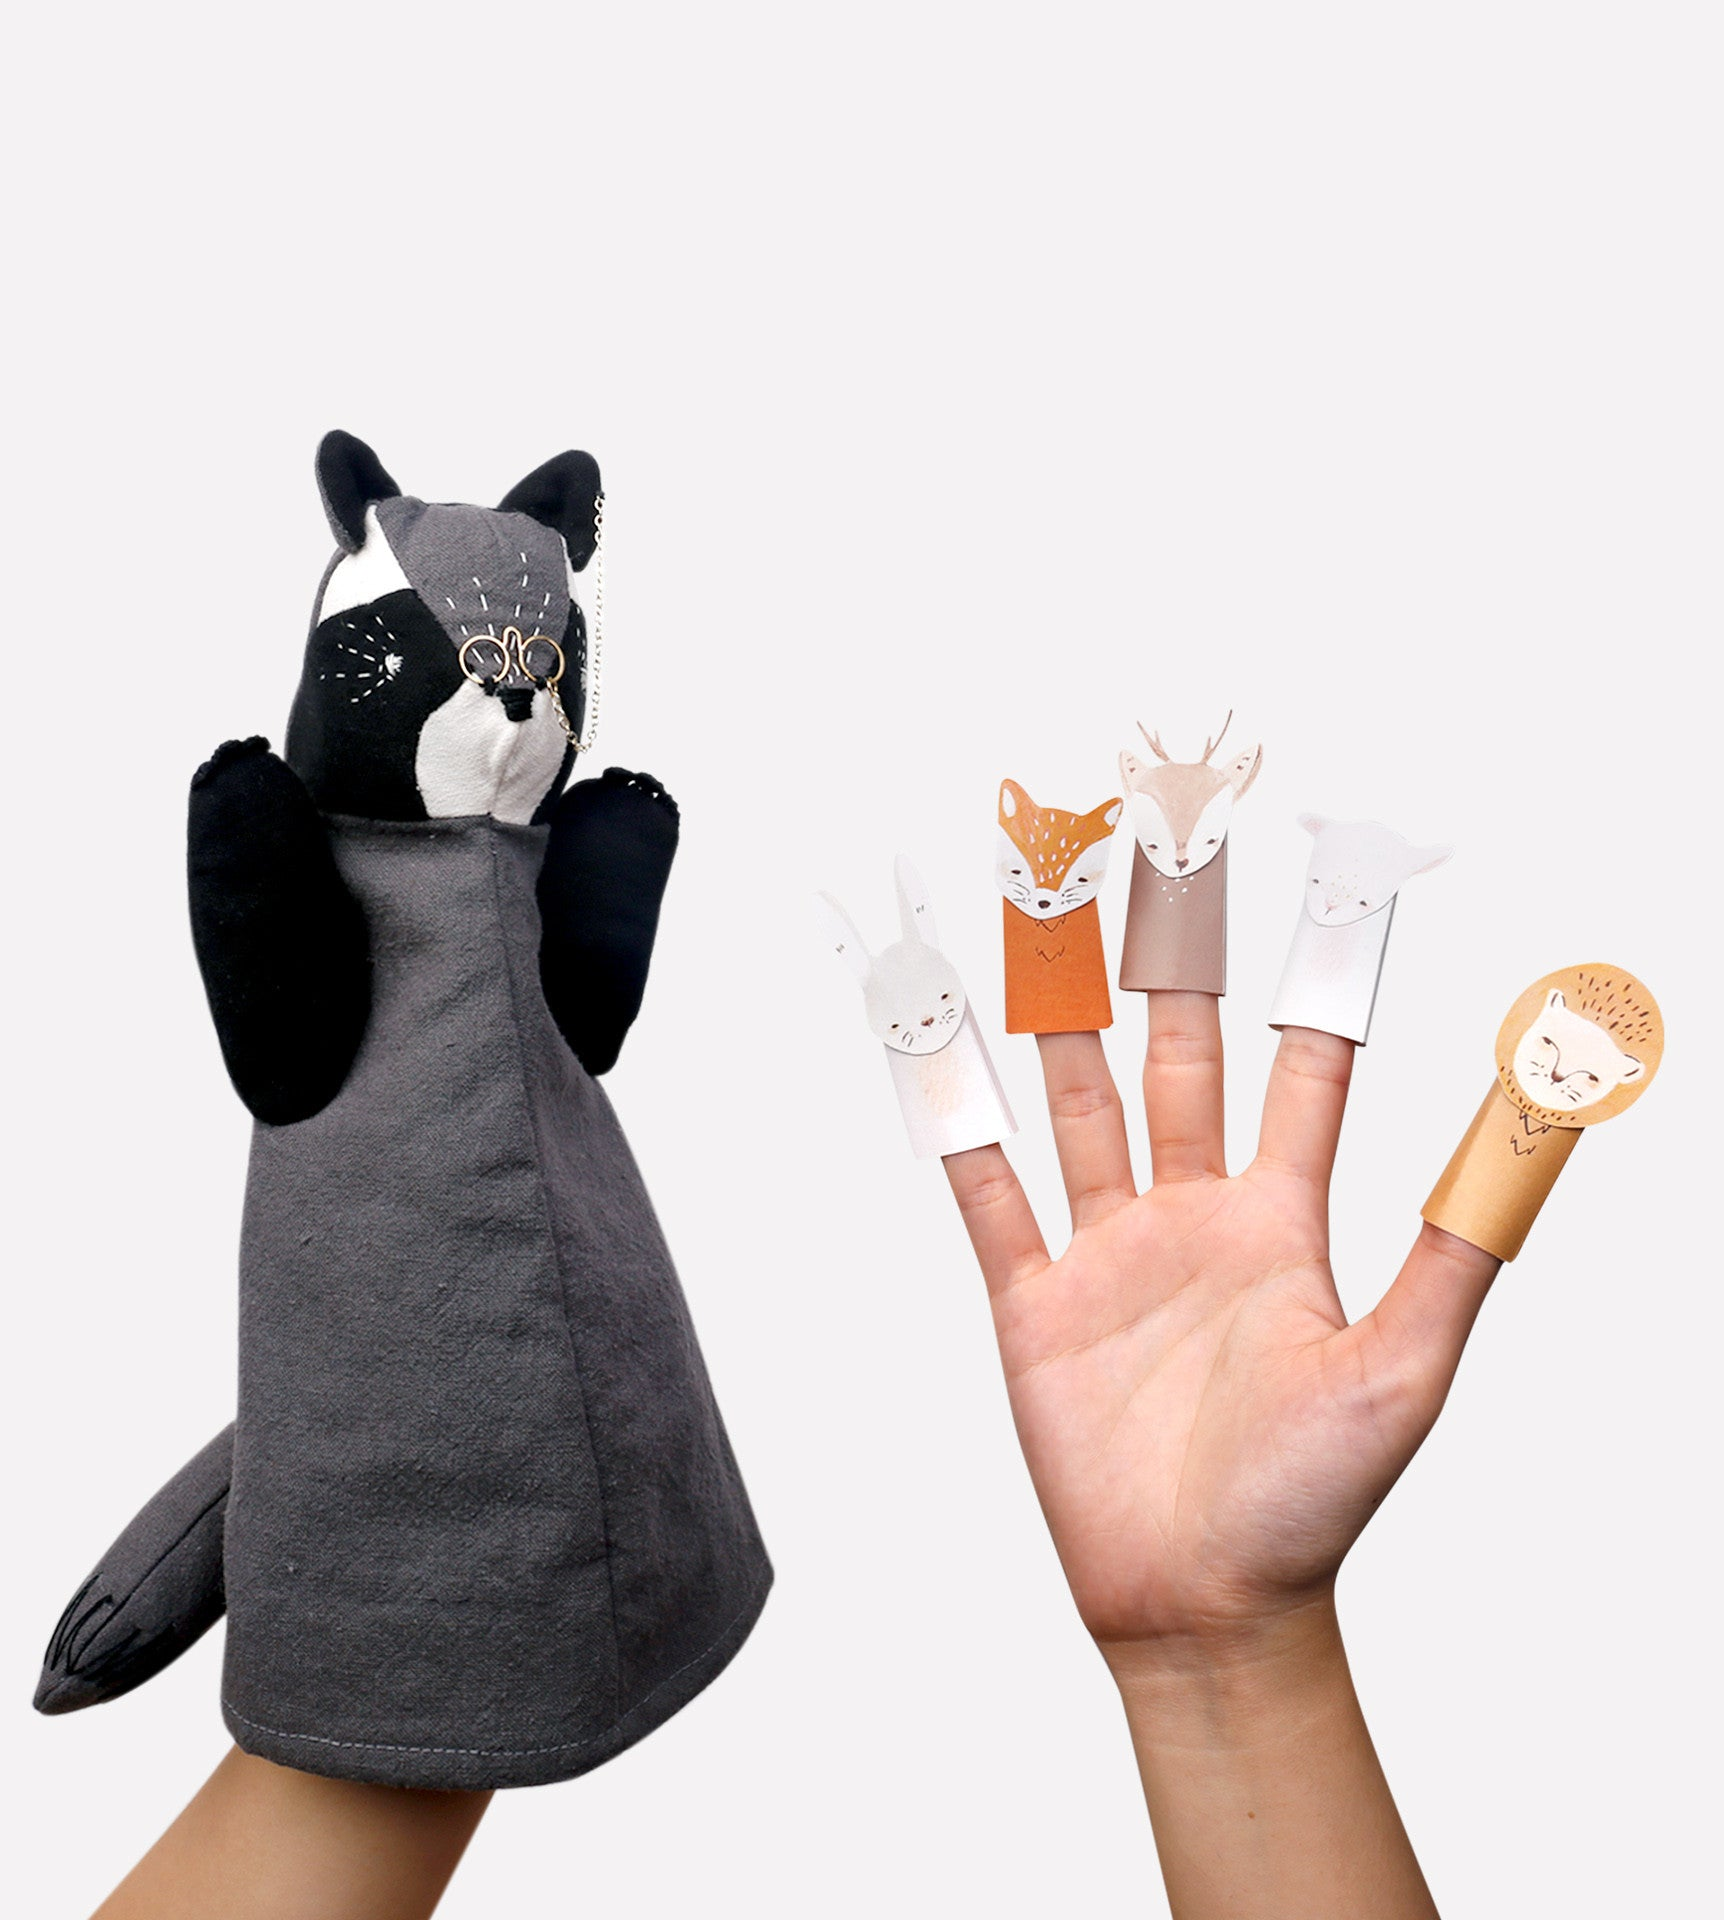 Dr. Jones Raccoon Puppet and Finger Puppets